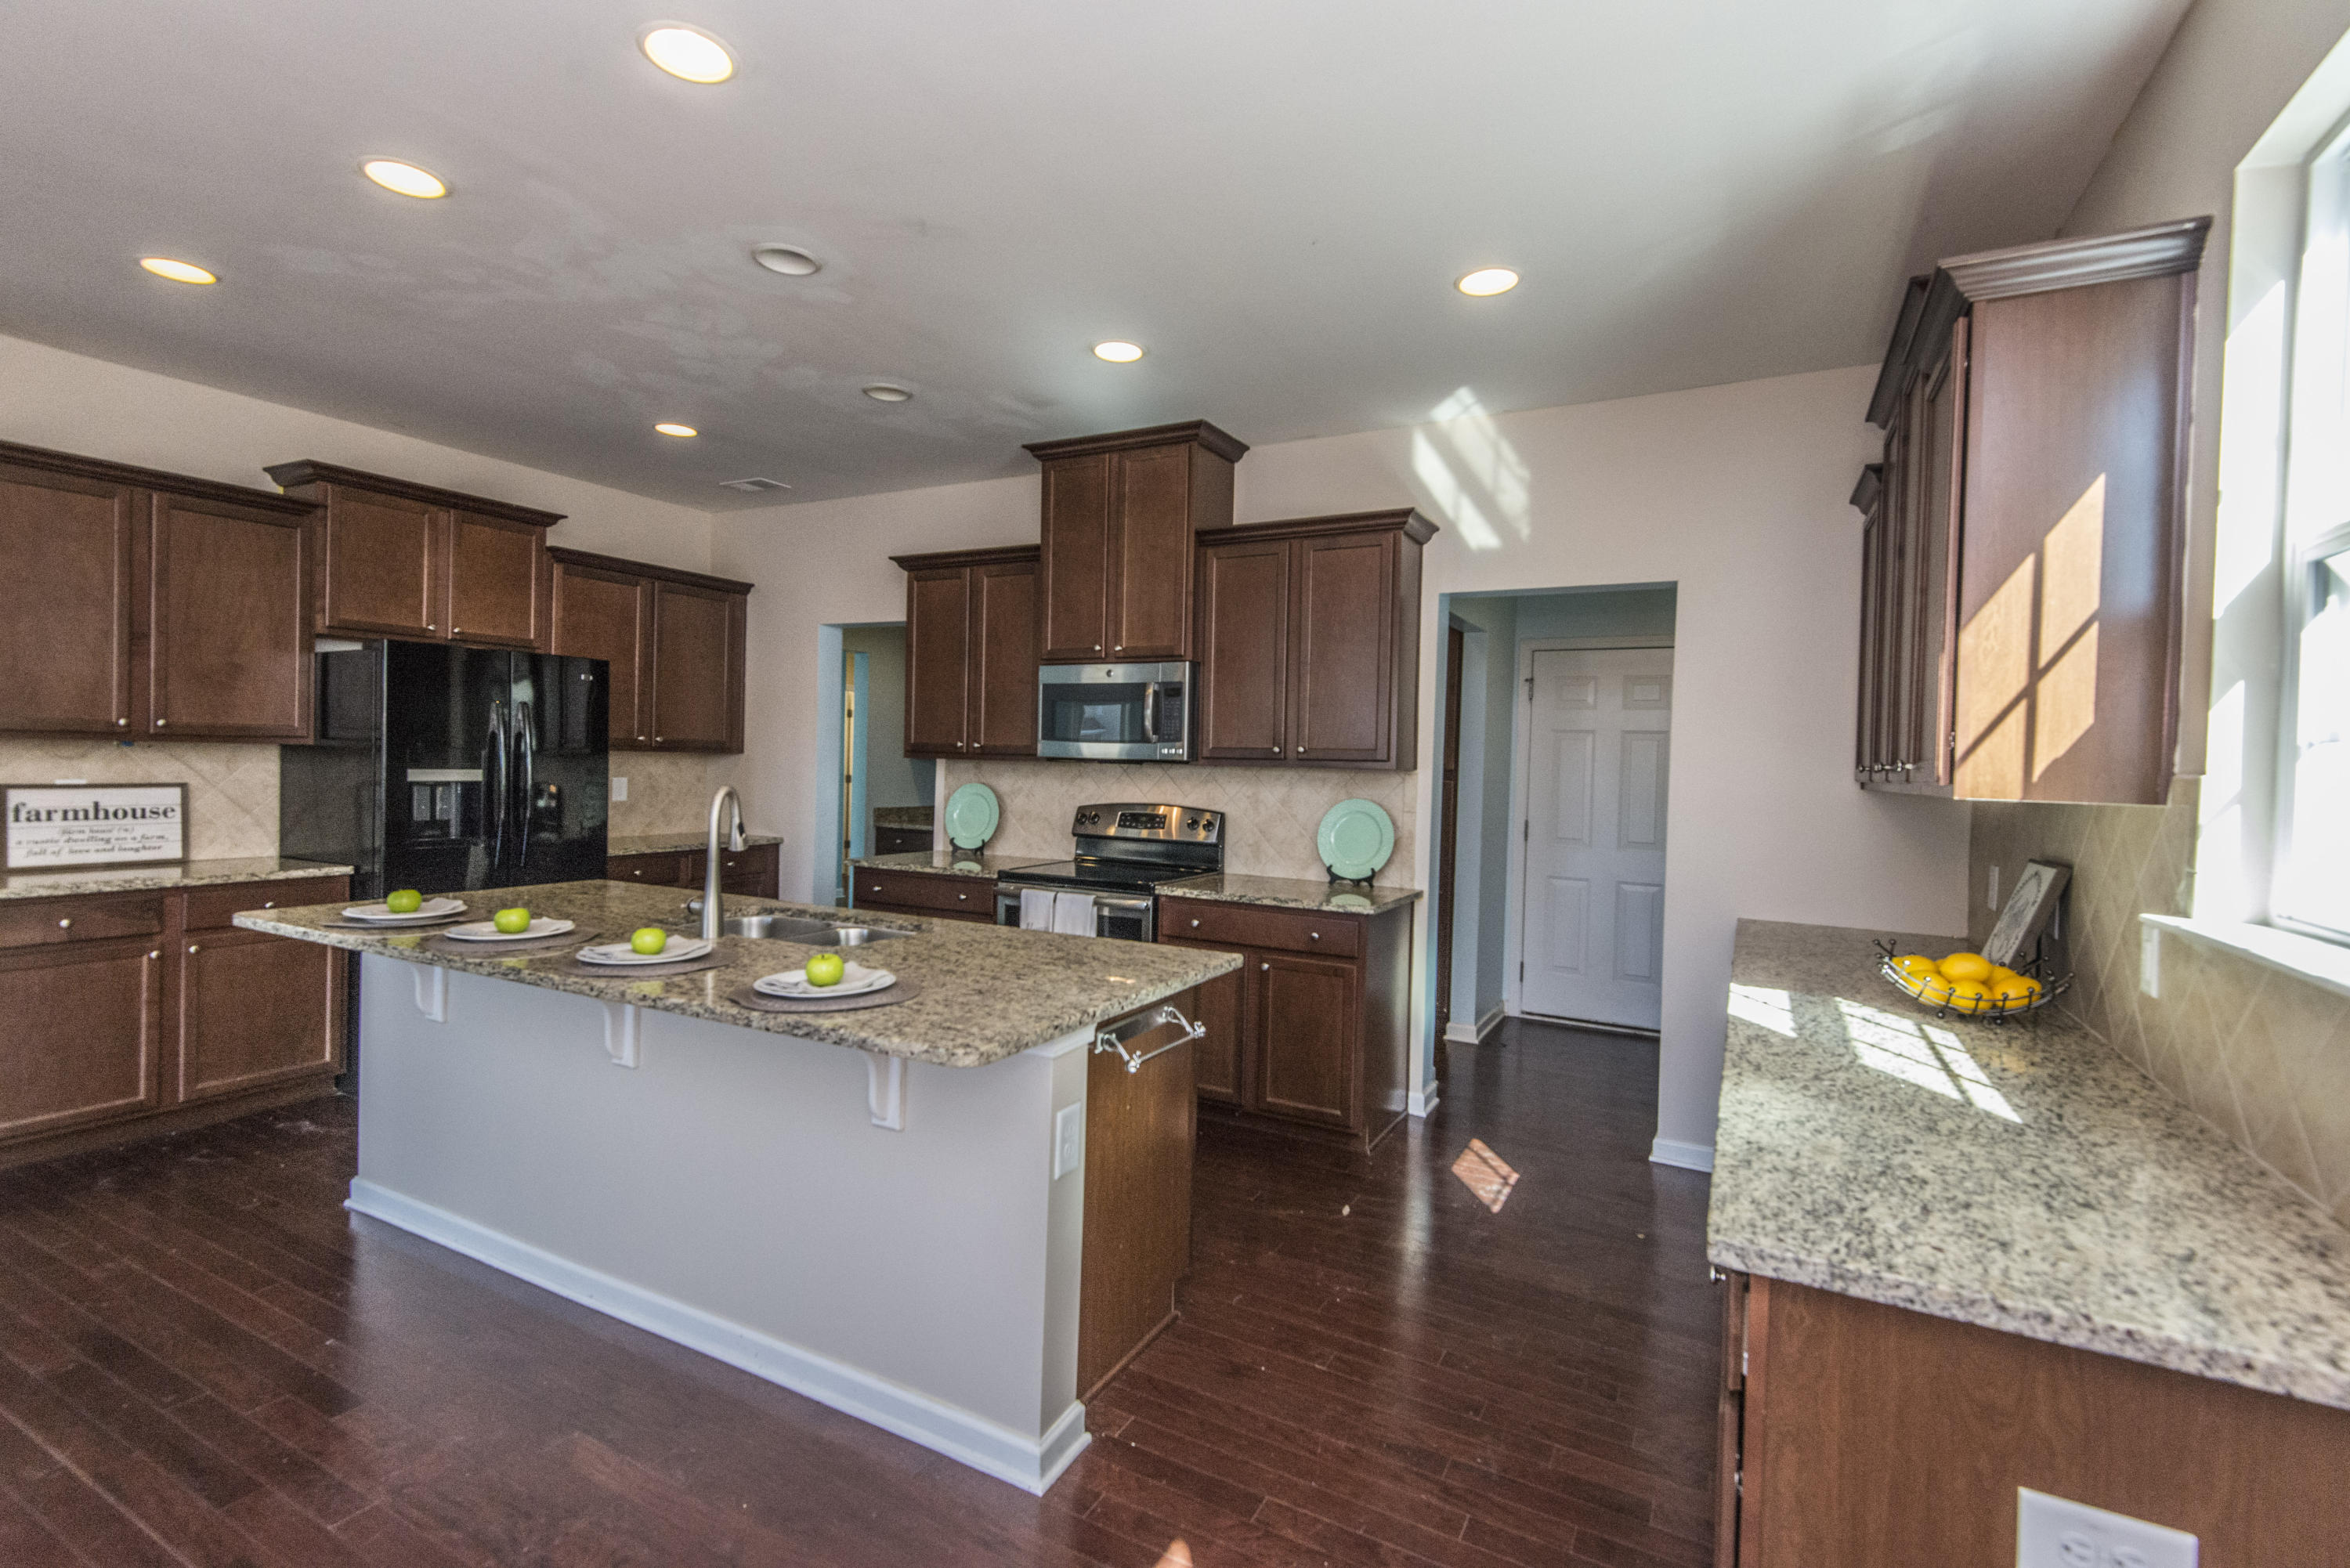 Wentworth Hall Homes For Sale - 216 Wexford, Summerville, SC - 32